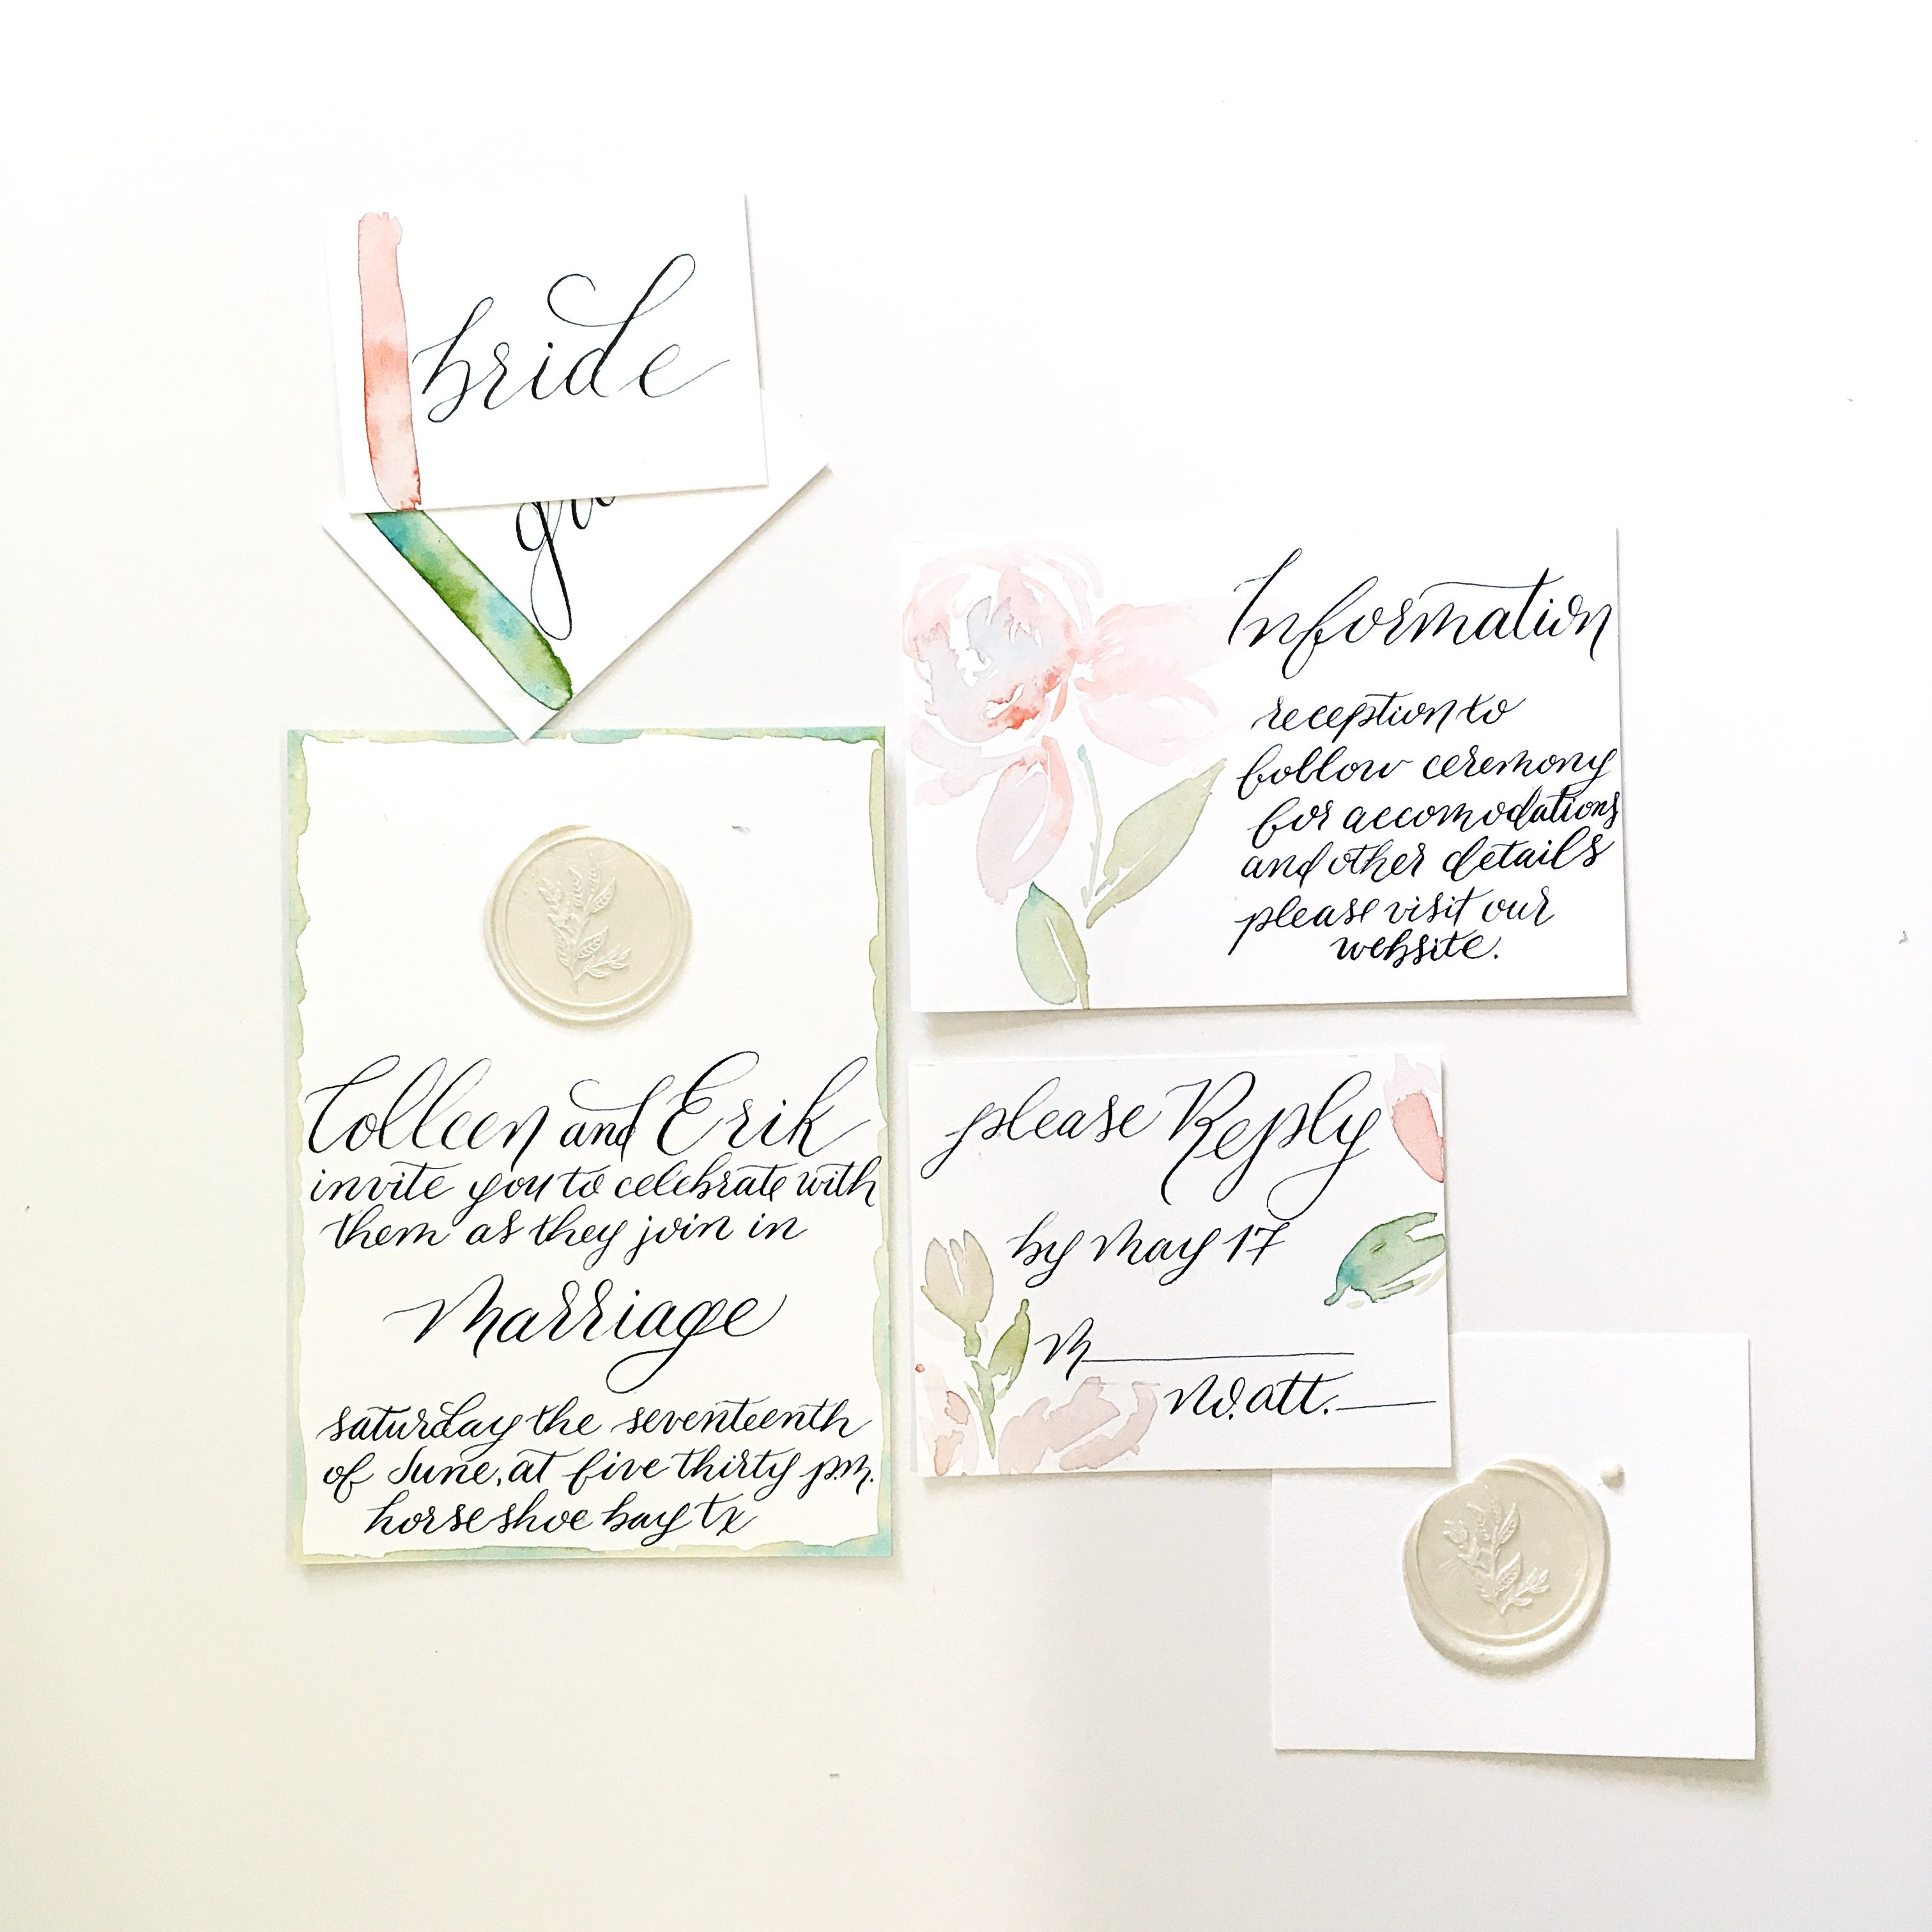 Formal Invitation Suite With Custom Calligraphy And Watercolor